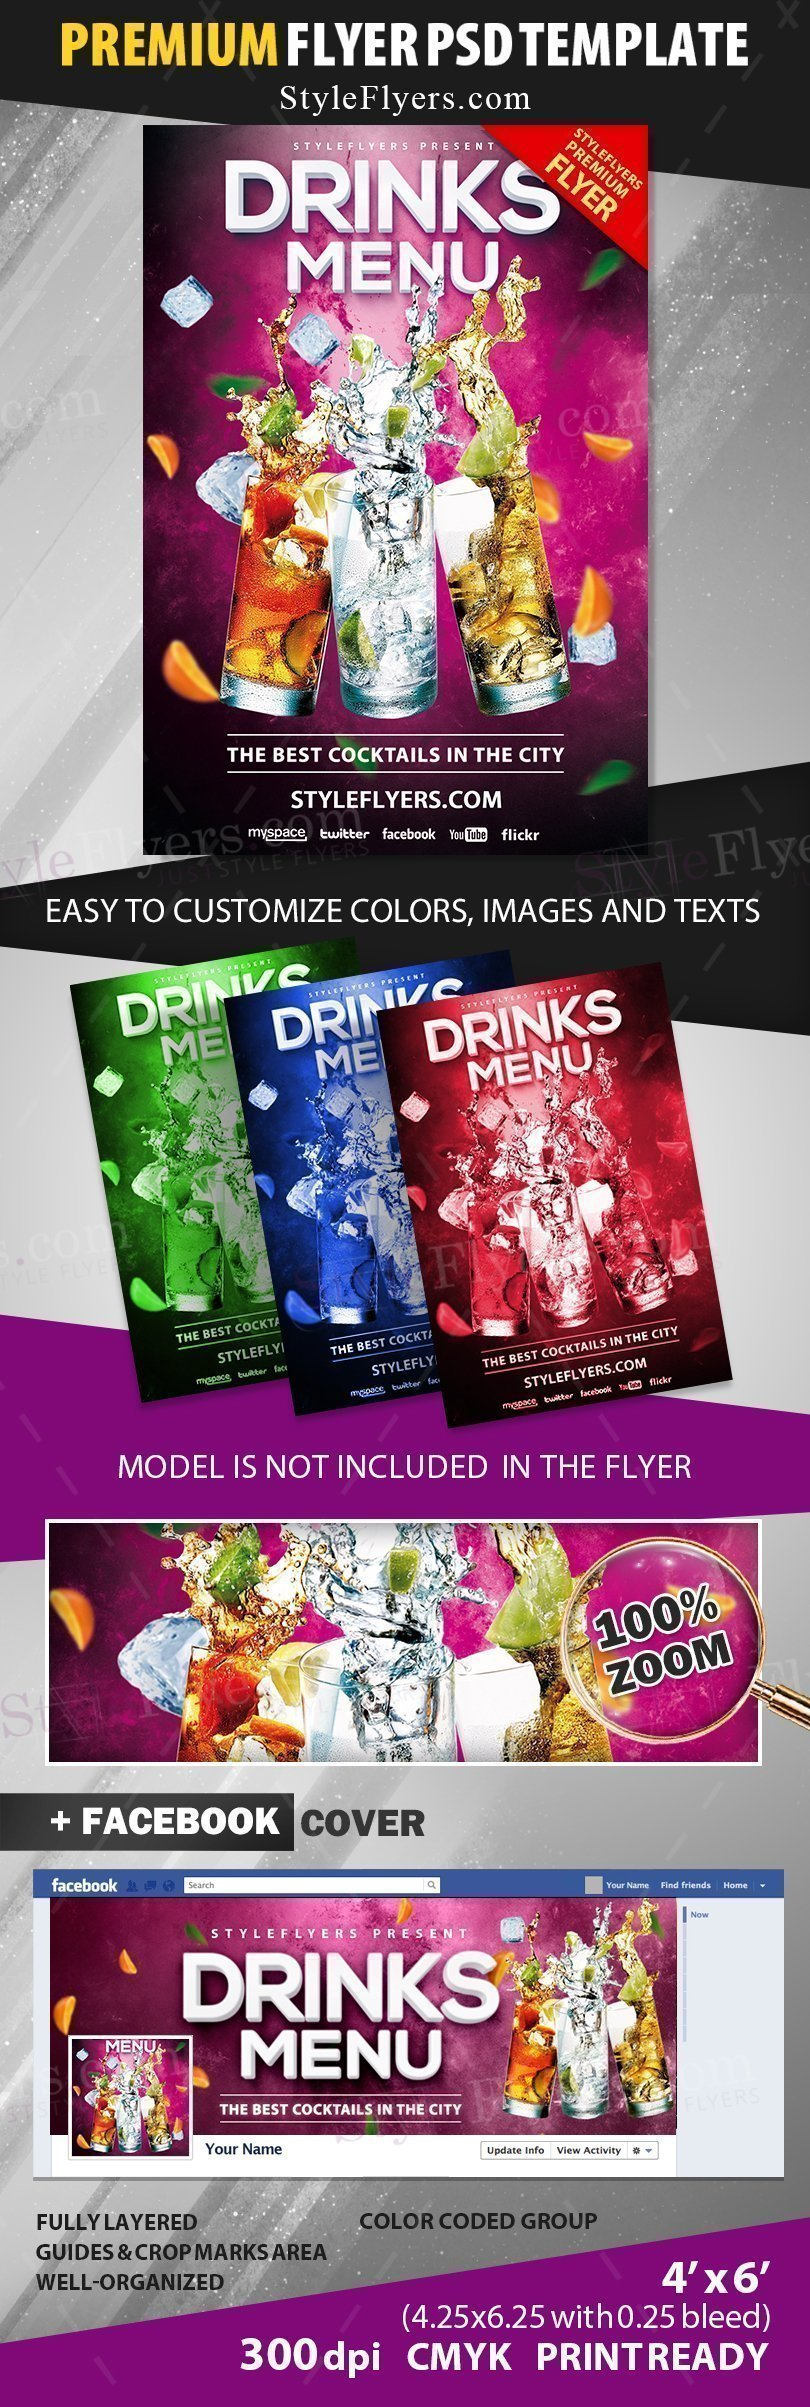 preview_Drinks Menu_psd_flyer